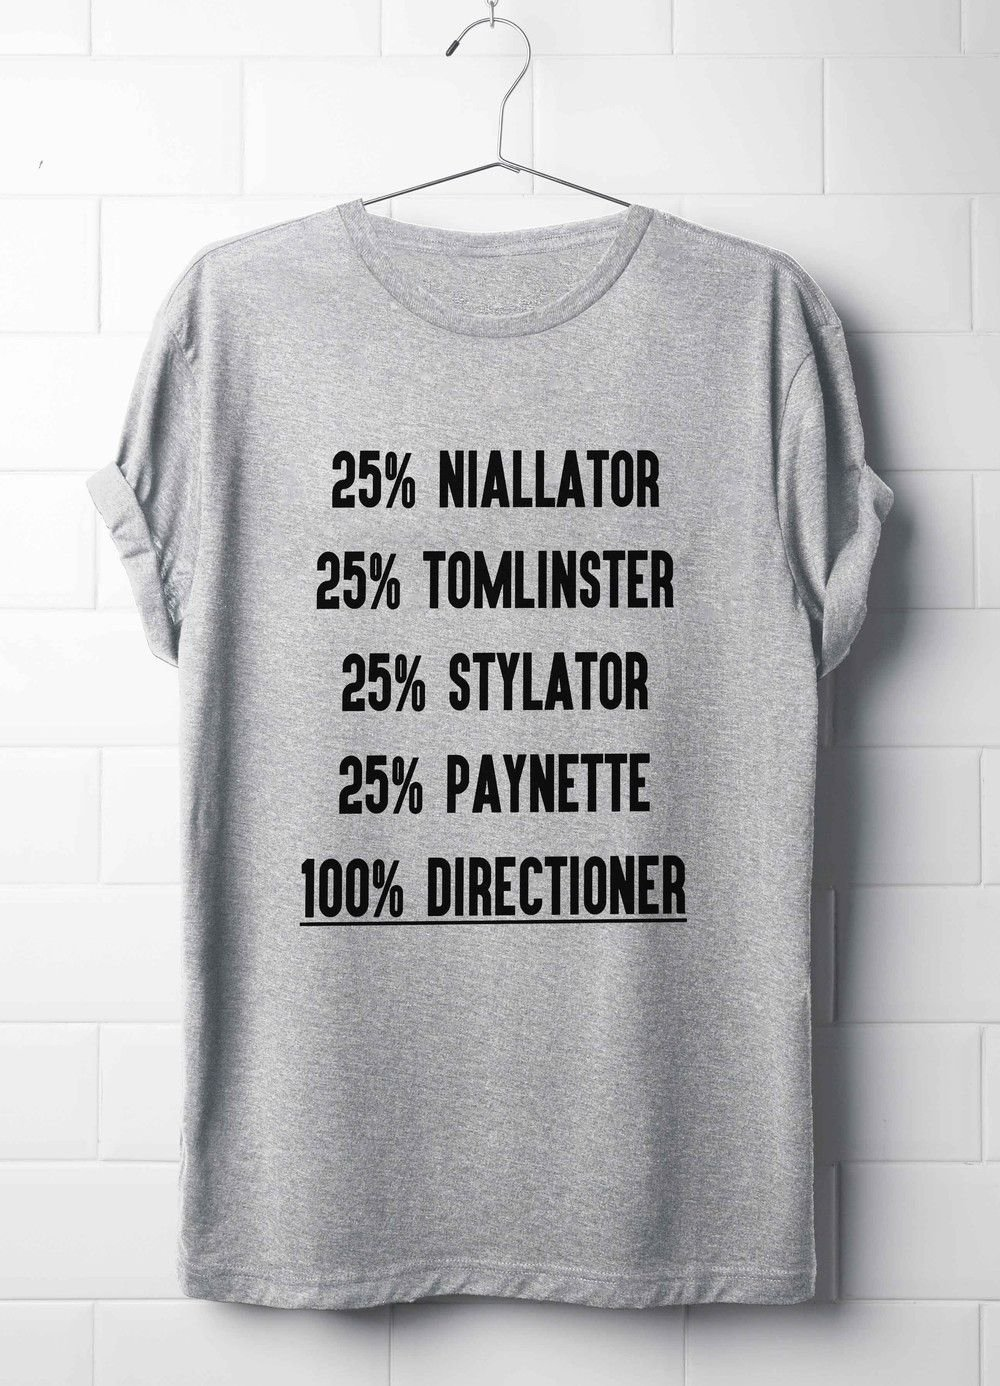 10 Fashionable One Direction T Shirt Ideas one direction t shirt directioner t shirt unique products 2021